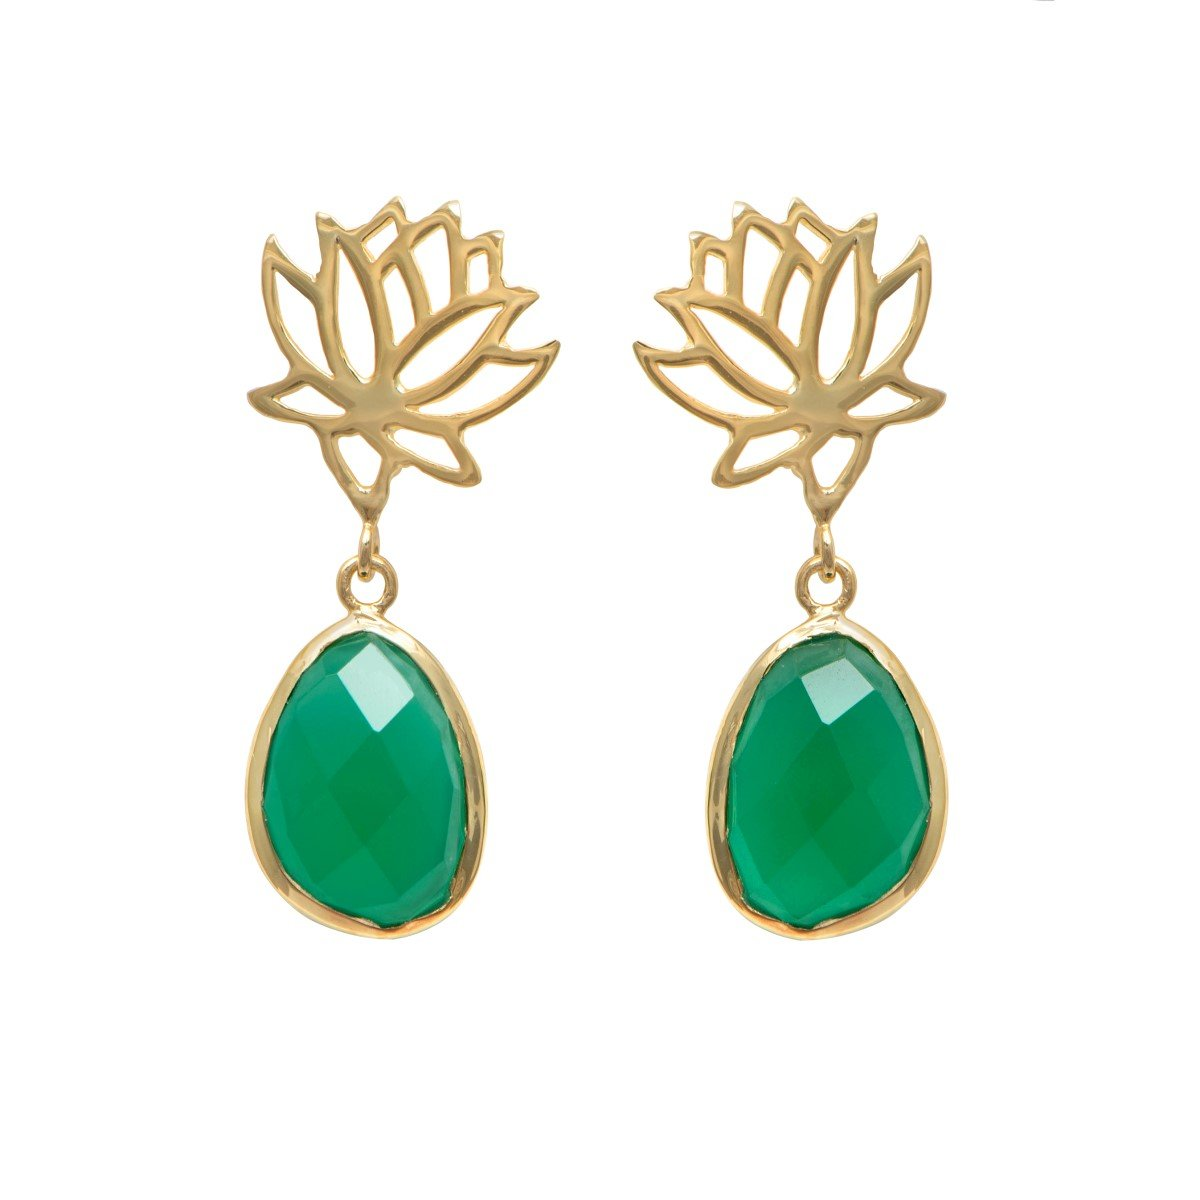 Lotus Earrings in Gold Plated Sterling Silver with a Green Onyx Gemstone Drop